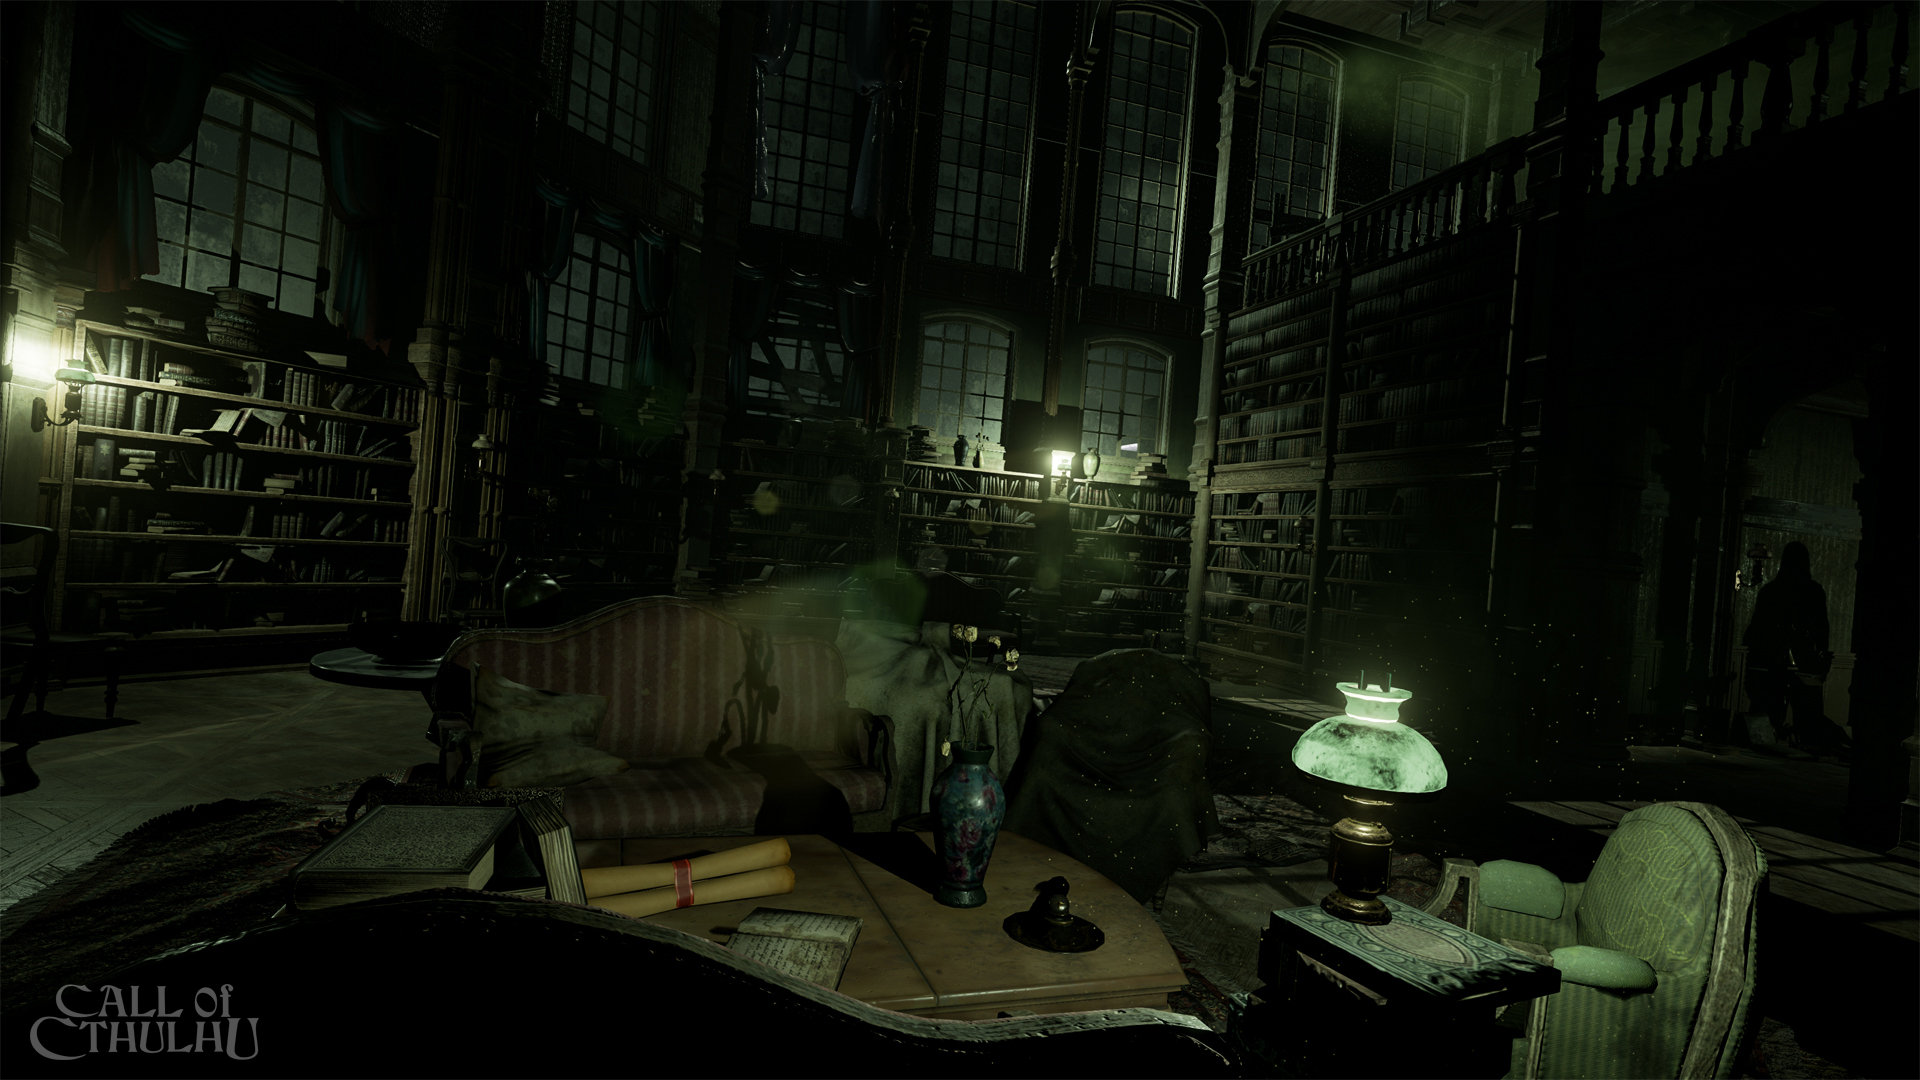 Call of Cthulhu in arrivo su PlayStation 4, Xbox One e Pc, il 30 ottobre 3